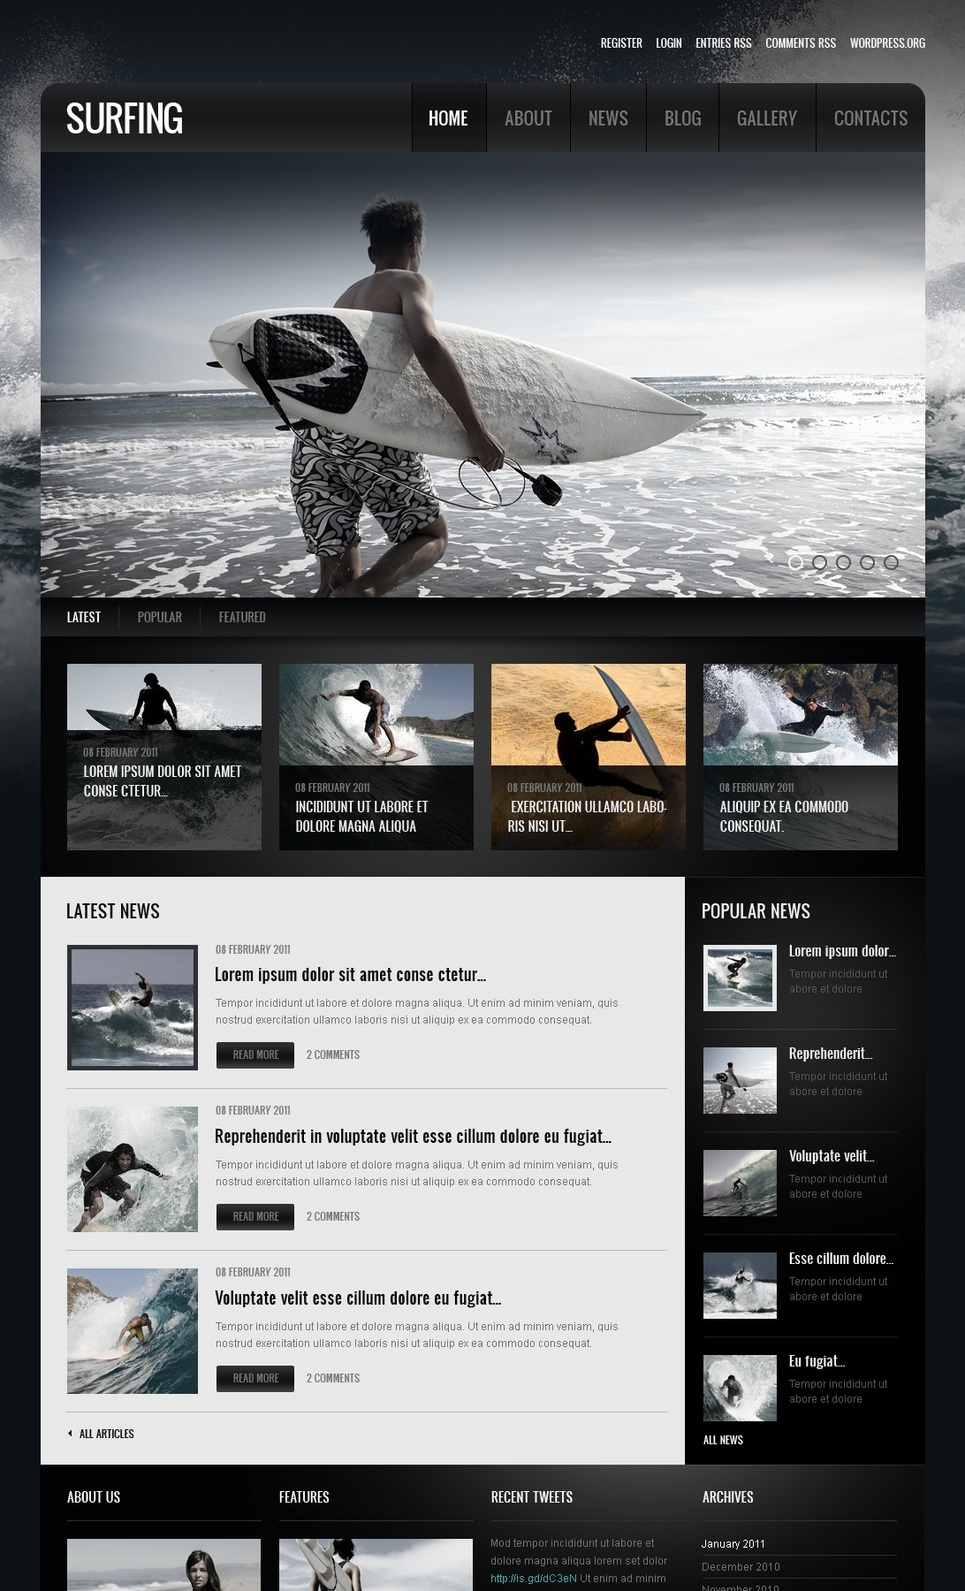 Extreme Surfing Website Template with Impressive Image Slider - image